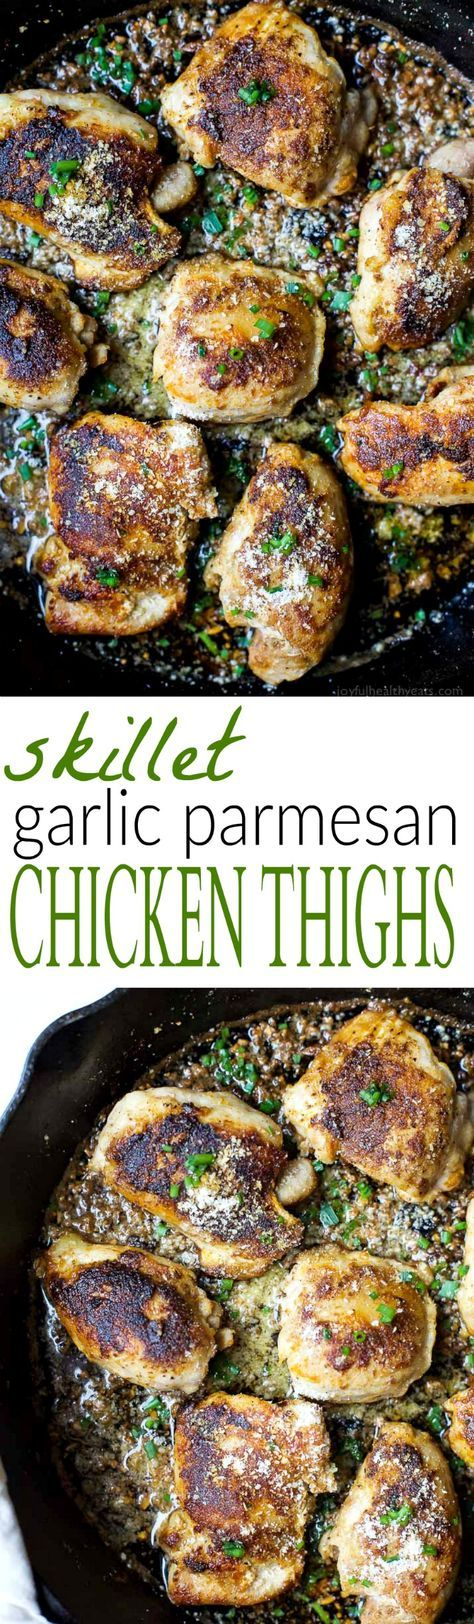 SKILLET GARLIC PARMESAN CHICKEN THIGHS, an amazing one pan skillet meal that will rock your socks off on flavor. This healthy meal is done in 30 minutes and finishes off at 262 calories a serving.   joyfulhealthyeats.com   #ad Chicken Recipes   Gluten Free